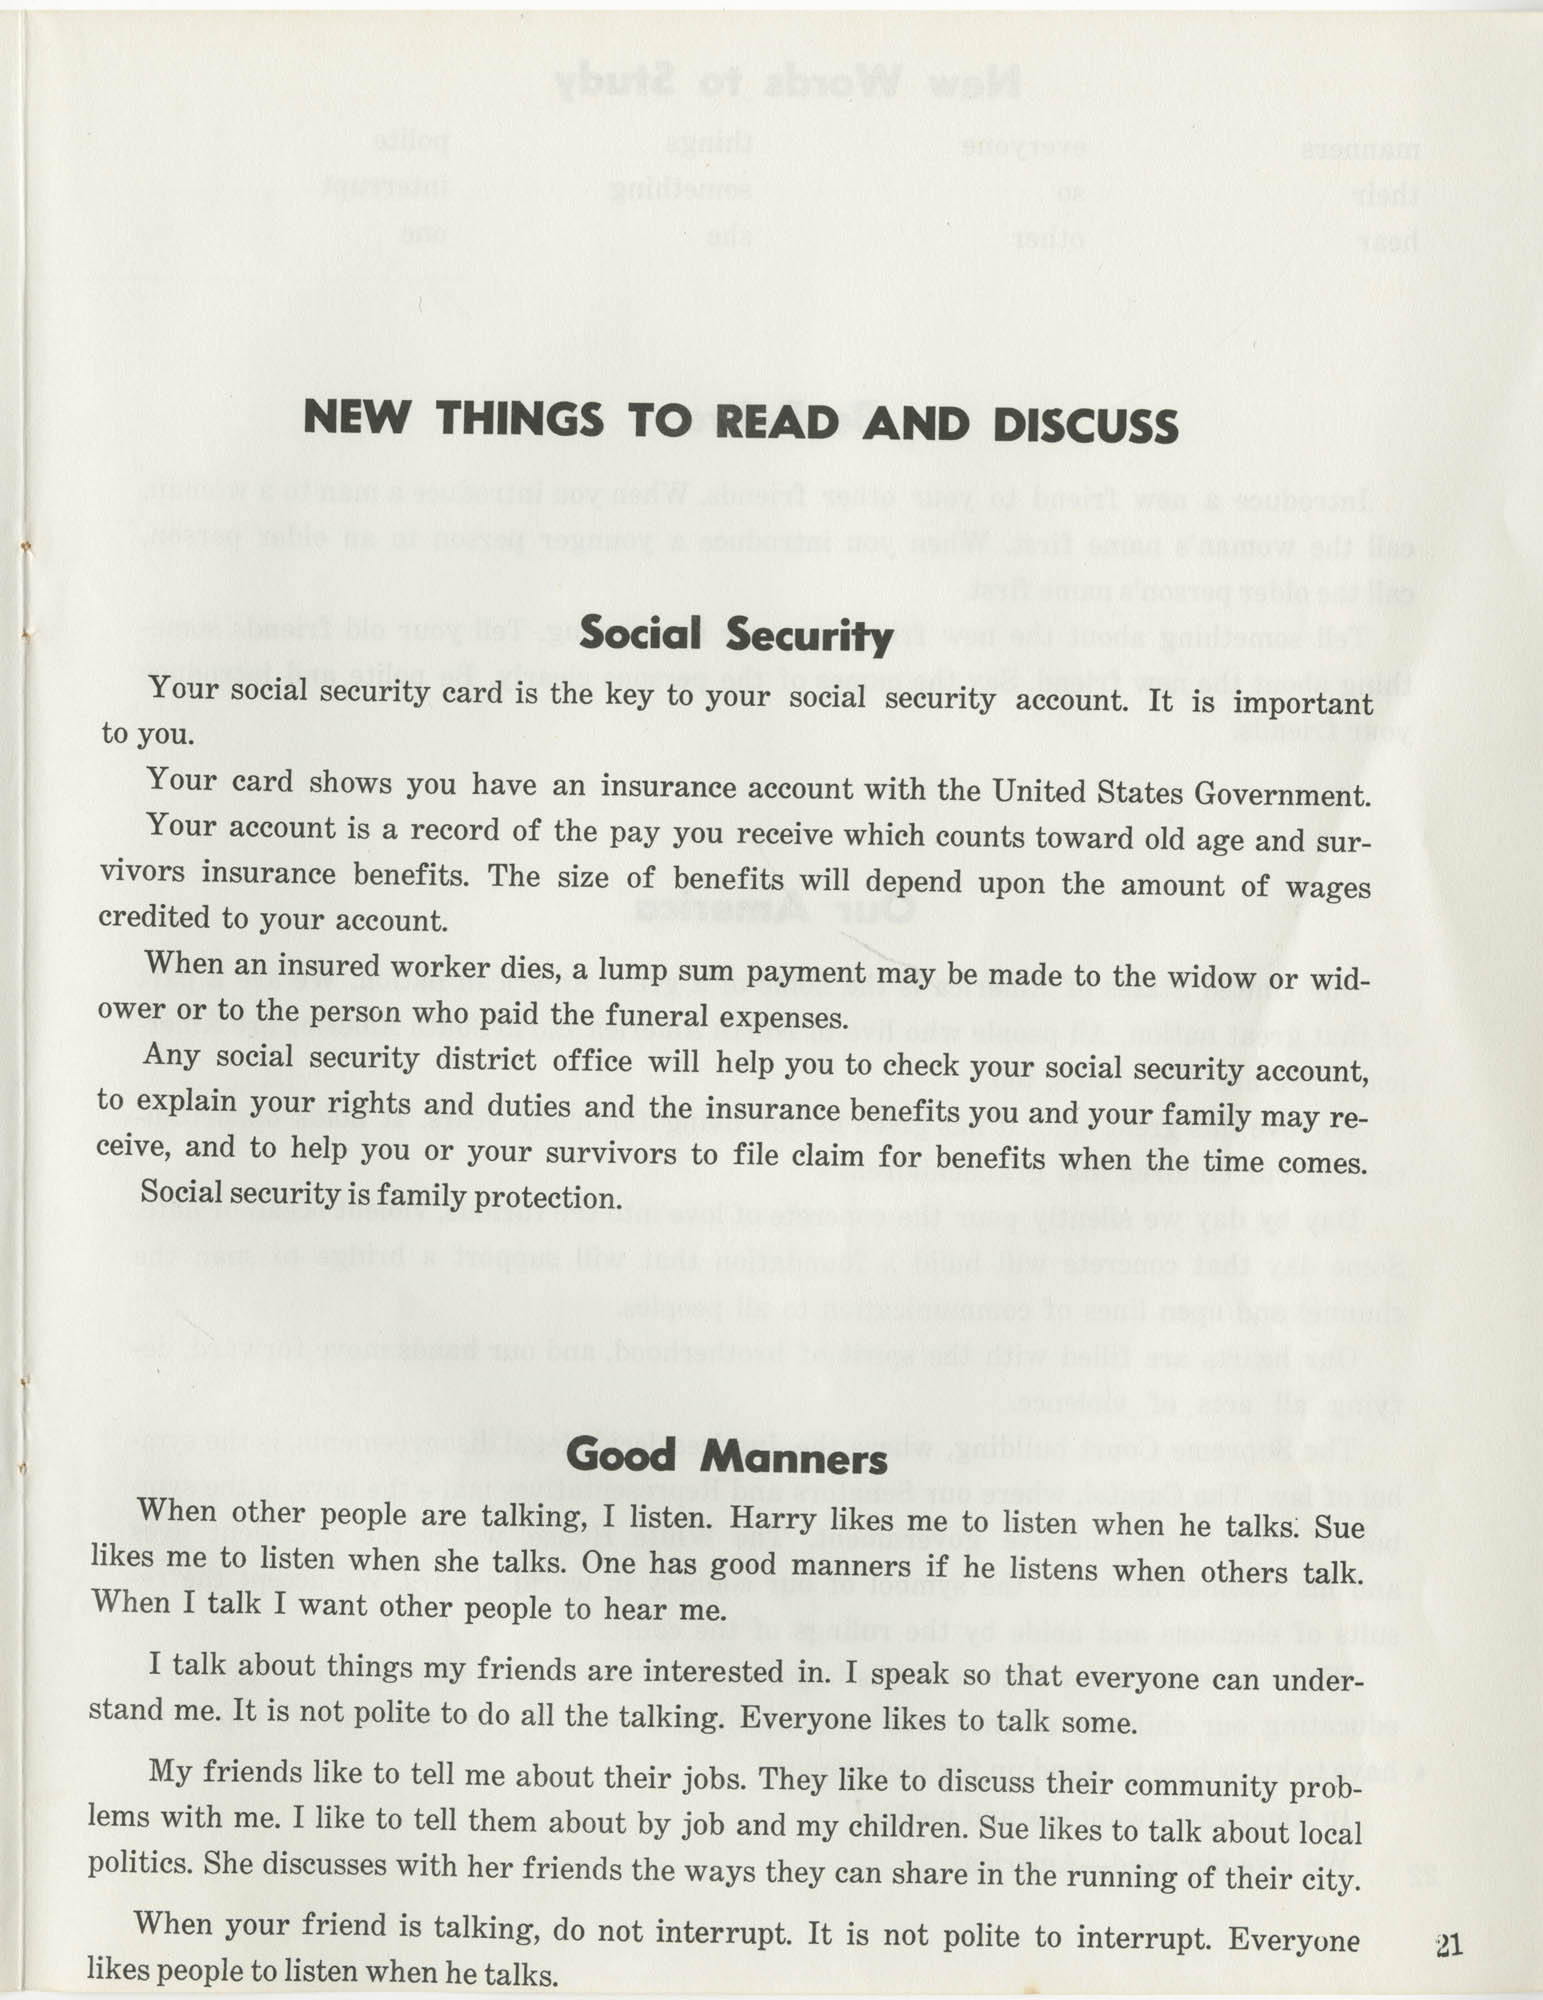 Southern Christian Leadership Conference Citizenship School Workbook, Page 21